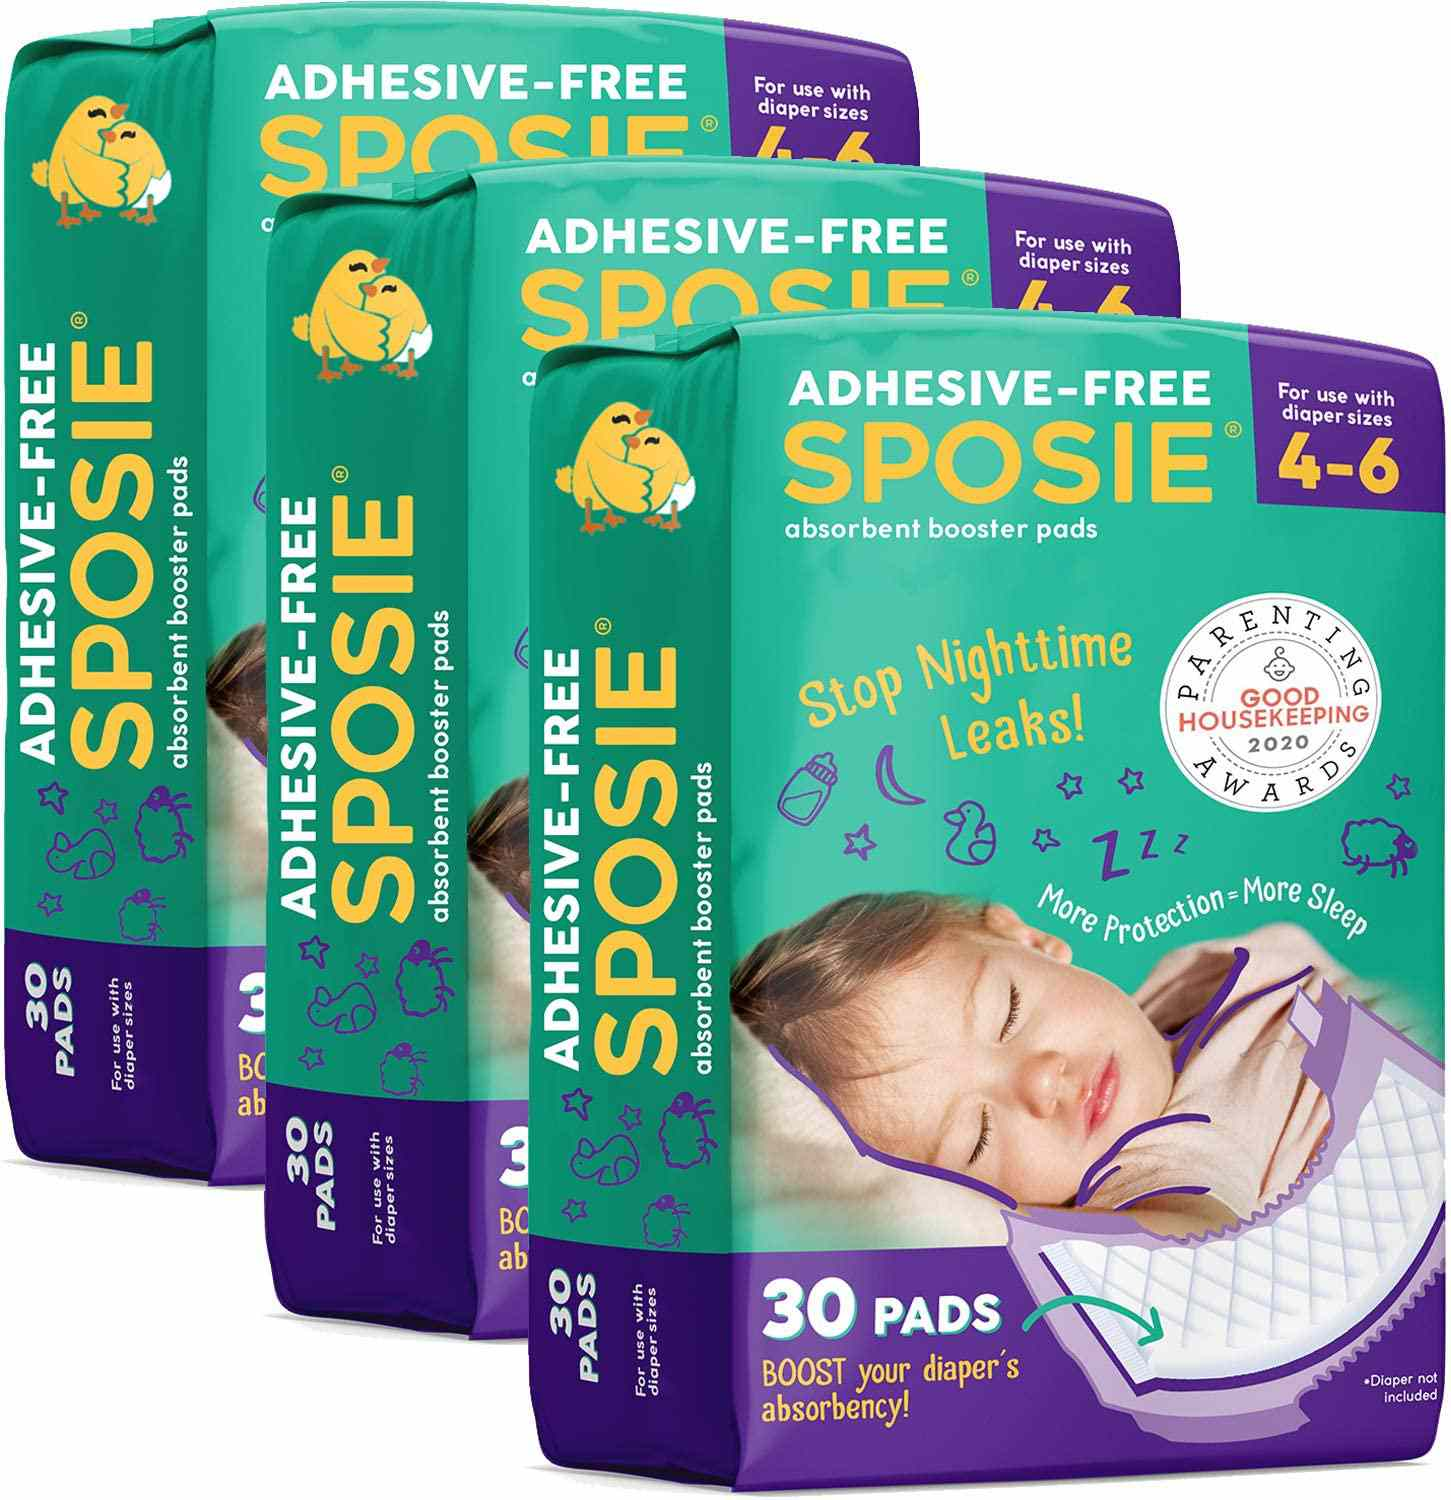 Select Kids Sposie Overnight Diaper Booster Pads